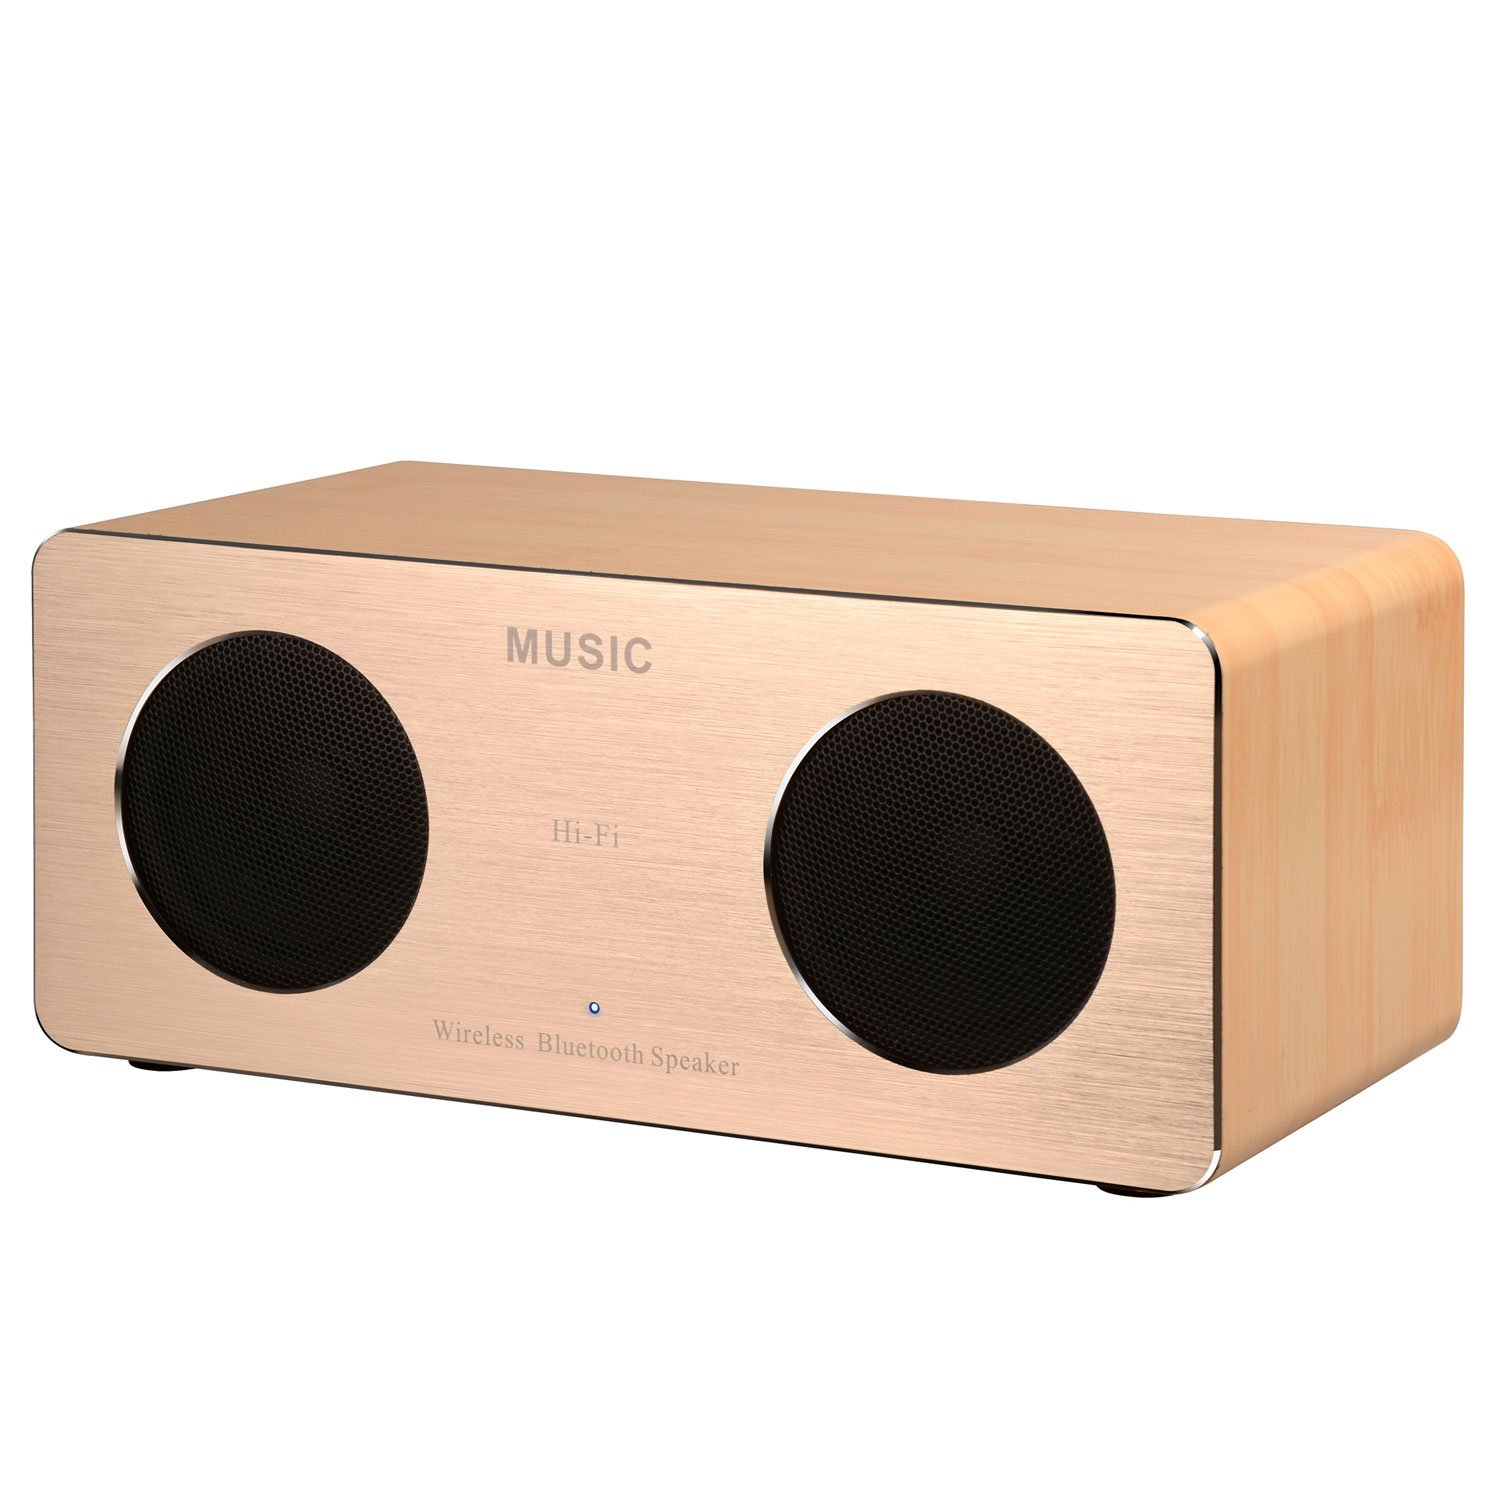 Portable Bluetooth Speakers, DYJ Mini Wood Wireless Speaker with Super Bass, 10W Output-Dual 5W Drivers, 10 Hours Play Time for iPhone 7/6S/6Plus/5S iPad Samsung S8 Tablet PC